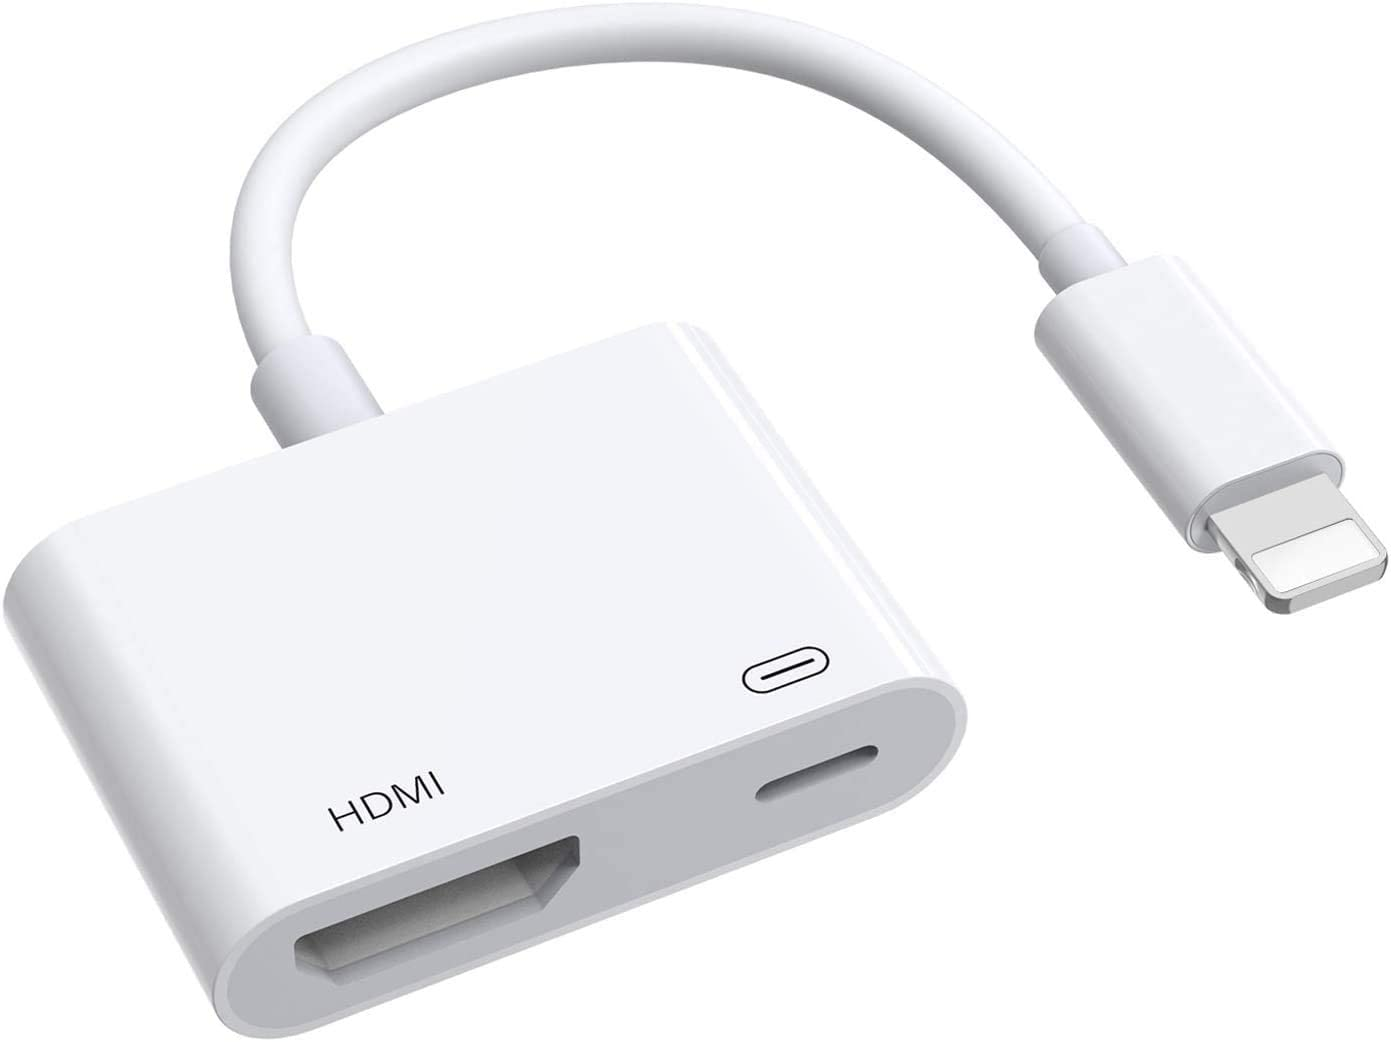 New Compatible with Phone to HDMI Adapter 1080P Digital AV Adapter Cable Sync Screen HDMI Connector with Charging Port for iOS 13/Phone/Pad/Pod Models (White)